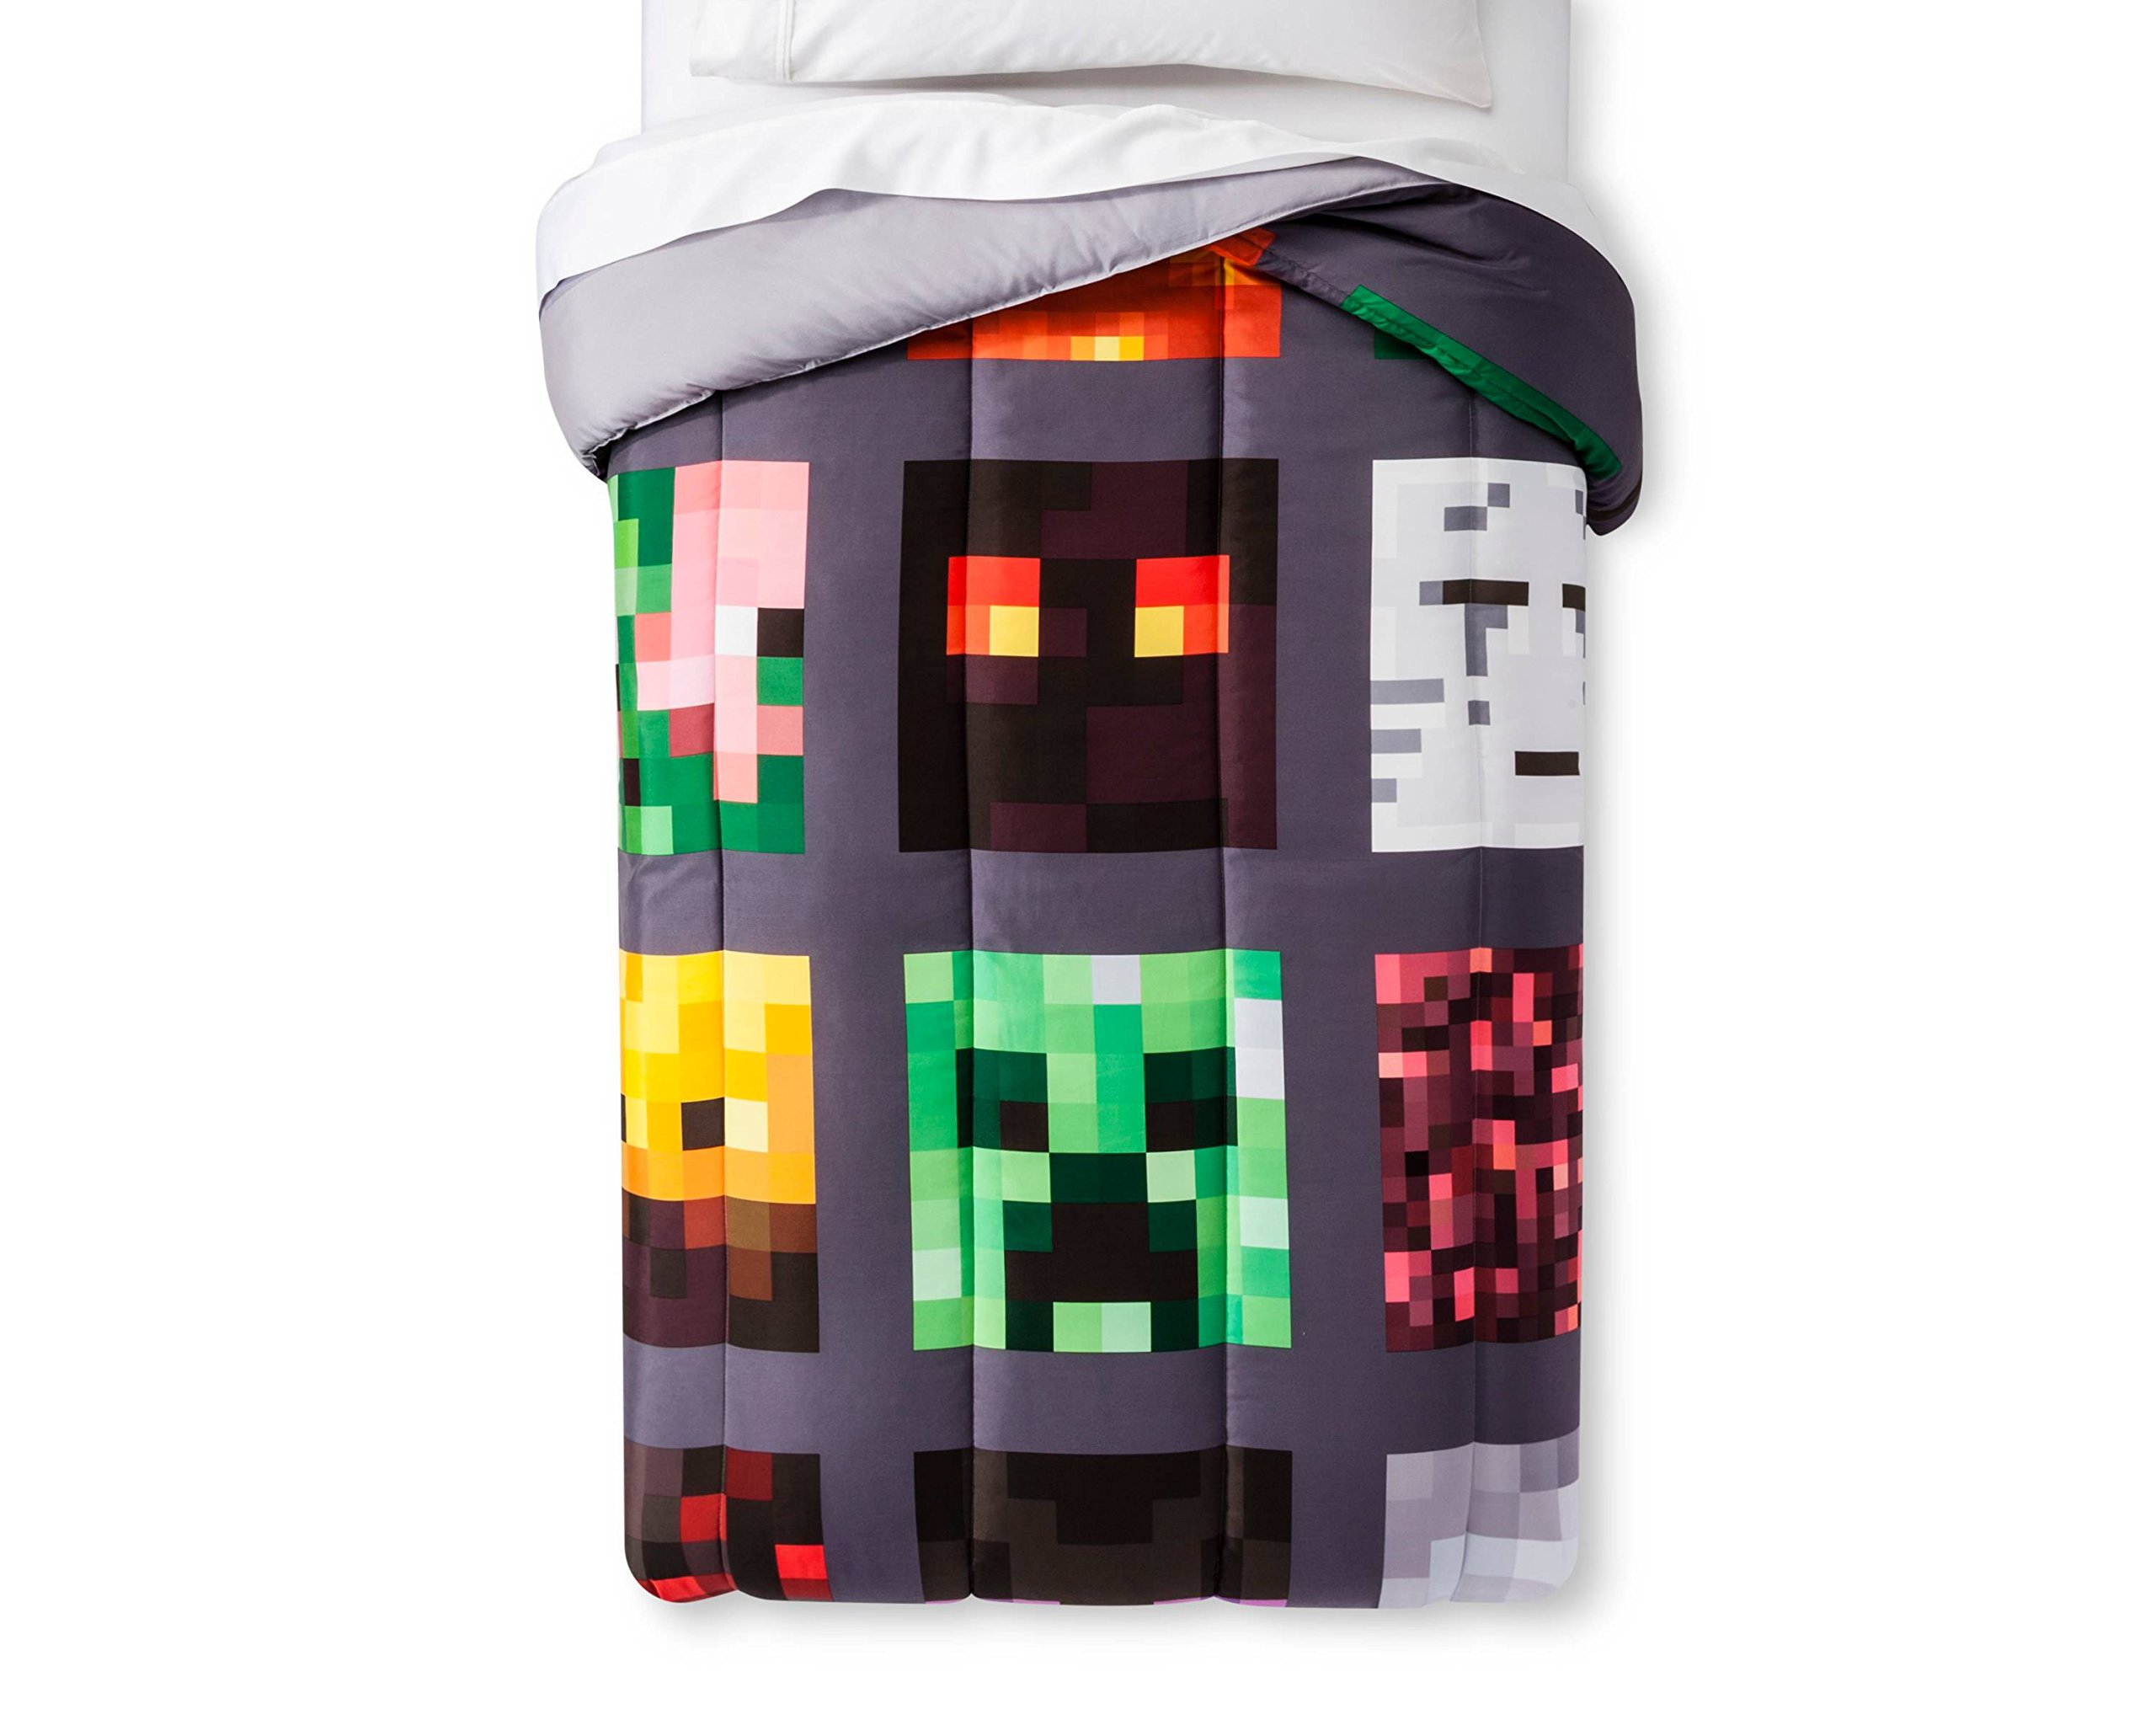 MineCraft Good vs Evil Microfiber Children Bedding Set TWIN Comforter and Sheets